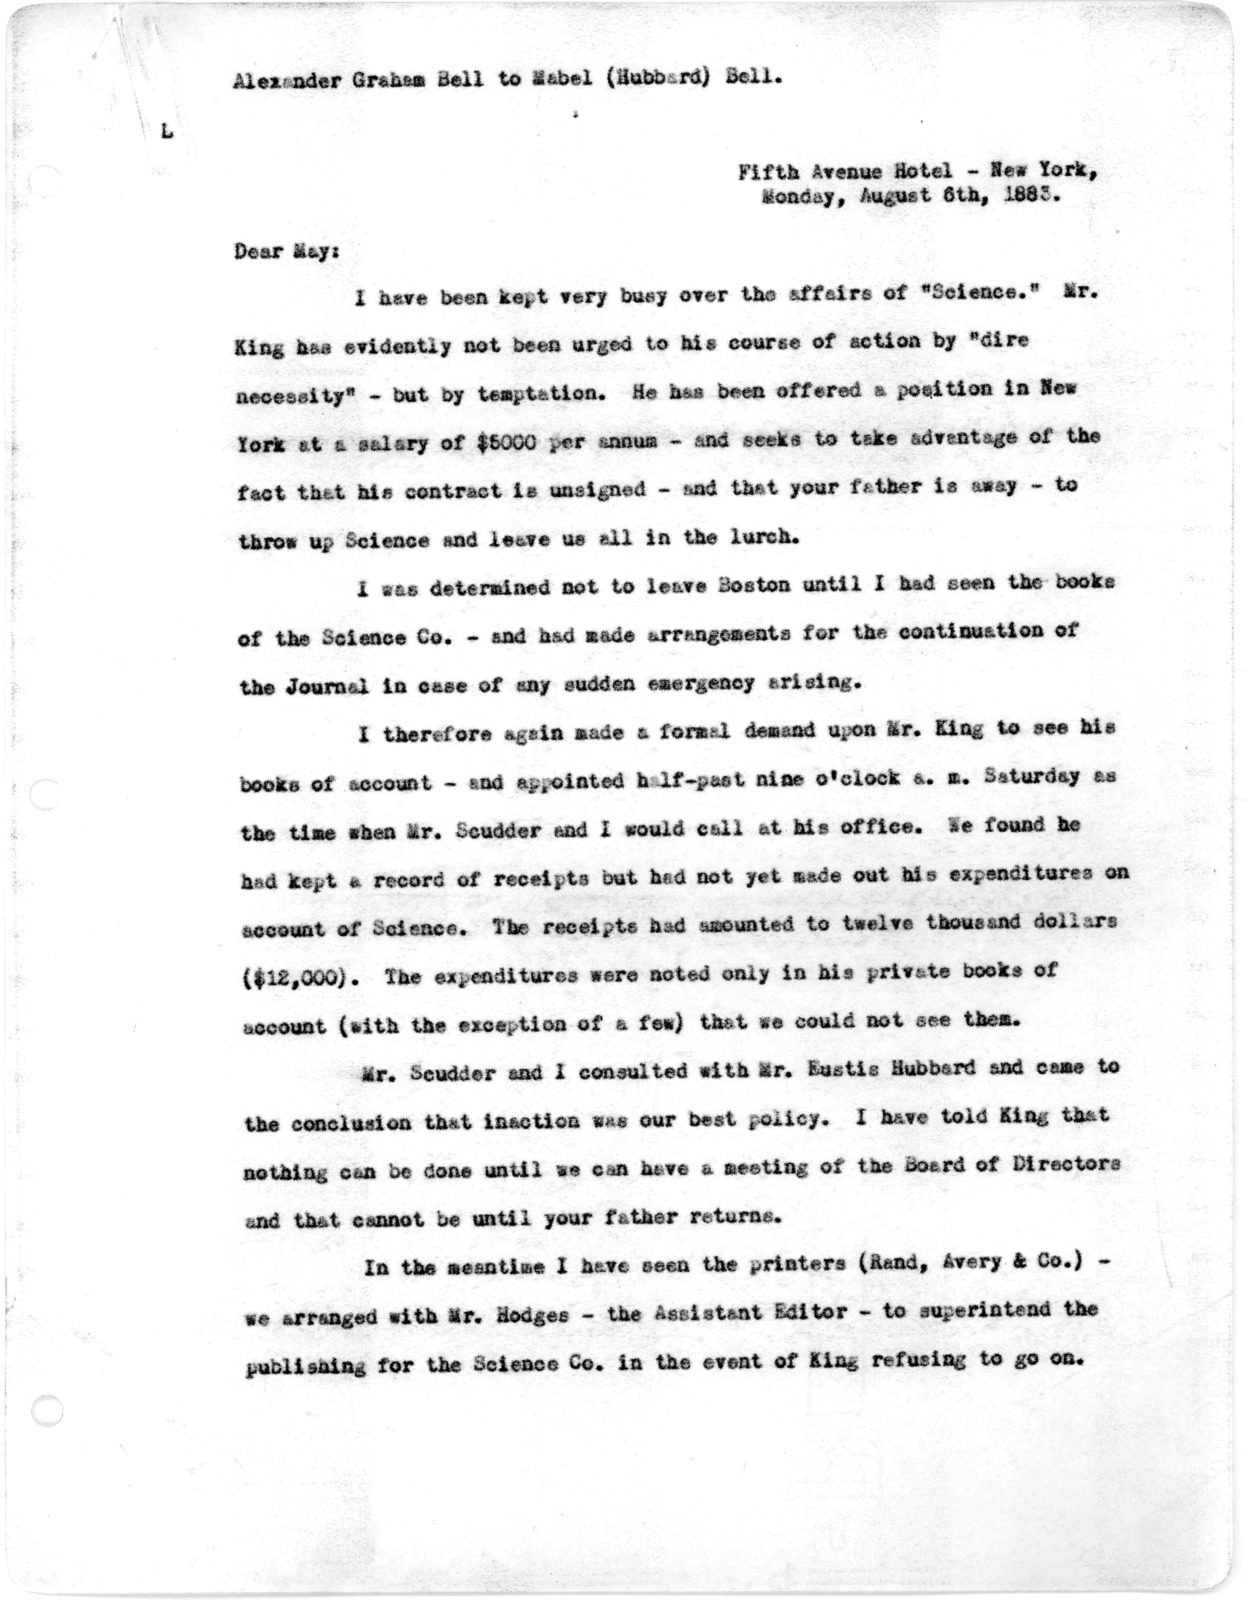 Letter from Alexander Graham Bell to Mabel Hubbard Bell, August 6, 1883